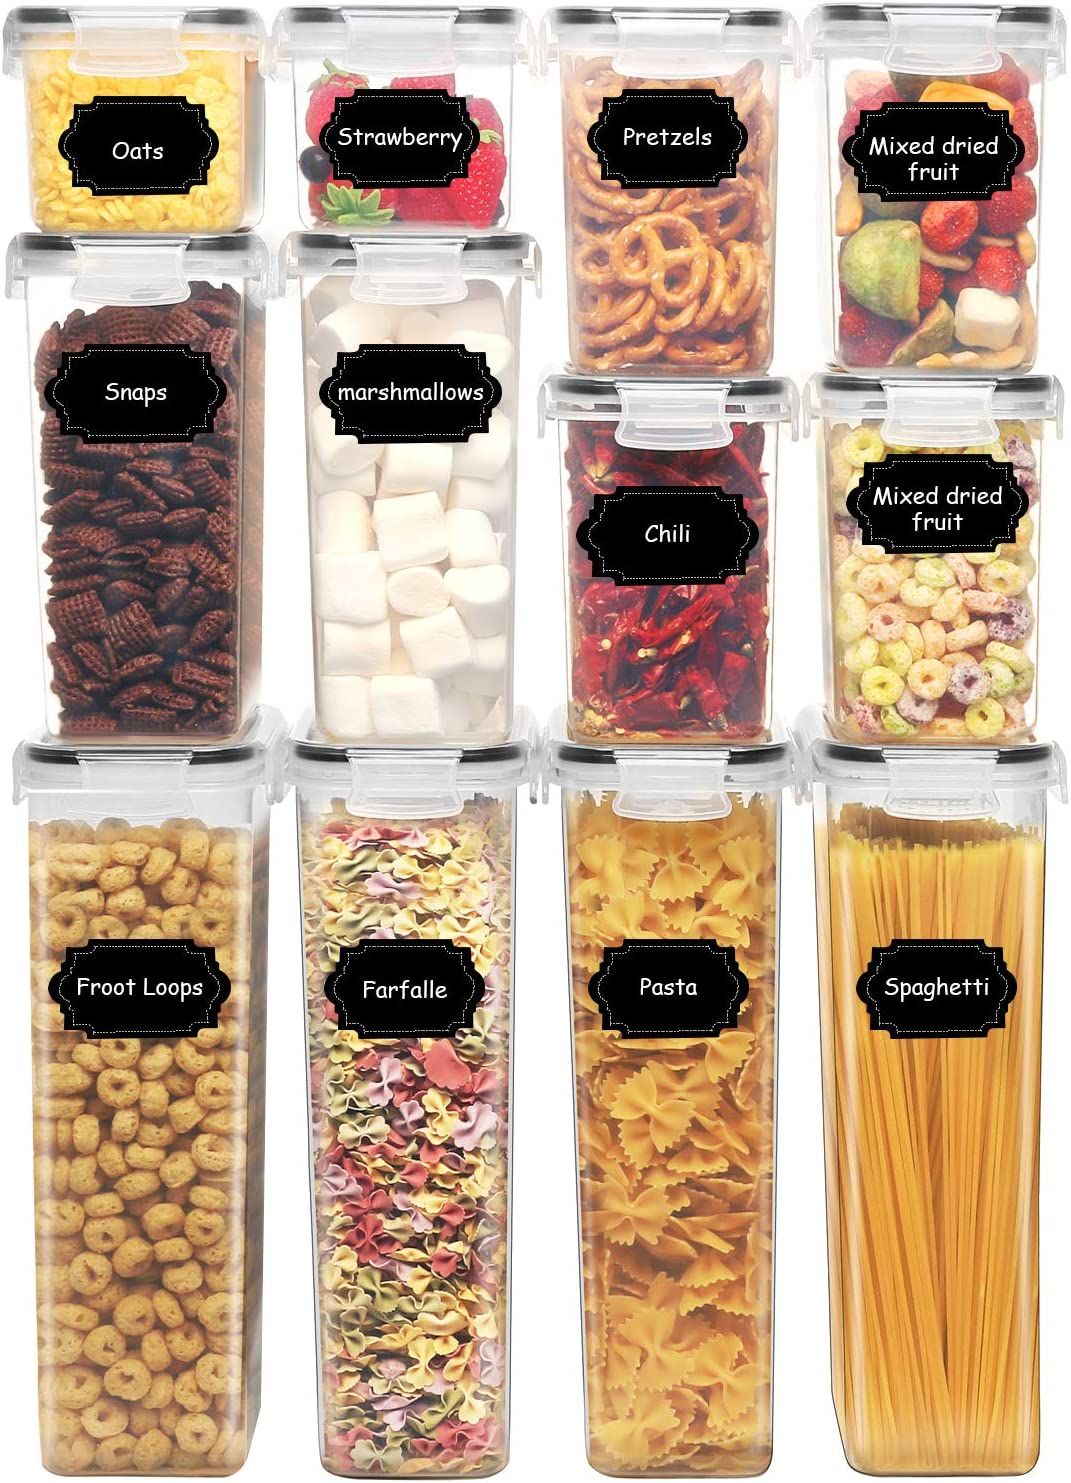 PRAKI Cereal Containers Storage Set, 12 PCS Airtight Food Storage Container with Lids, BPA Free Plastic, Kitchen Pantry Organization, ideal for Cereal, Flour, Sugar, Spaghetti, with Labels, Marker